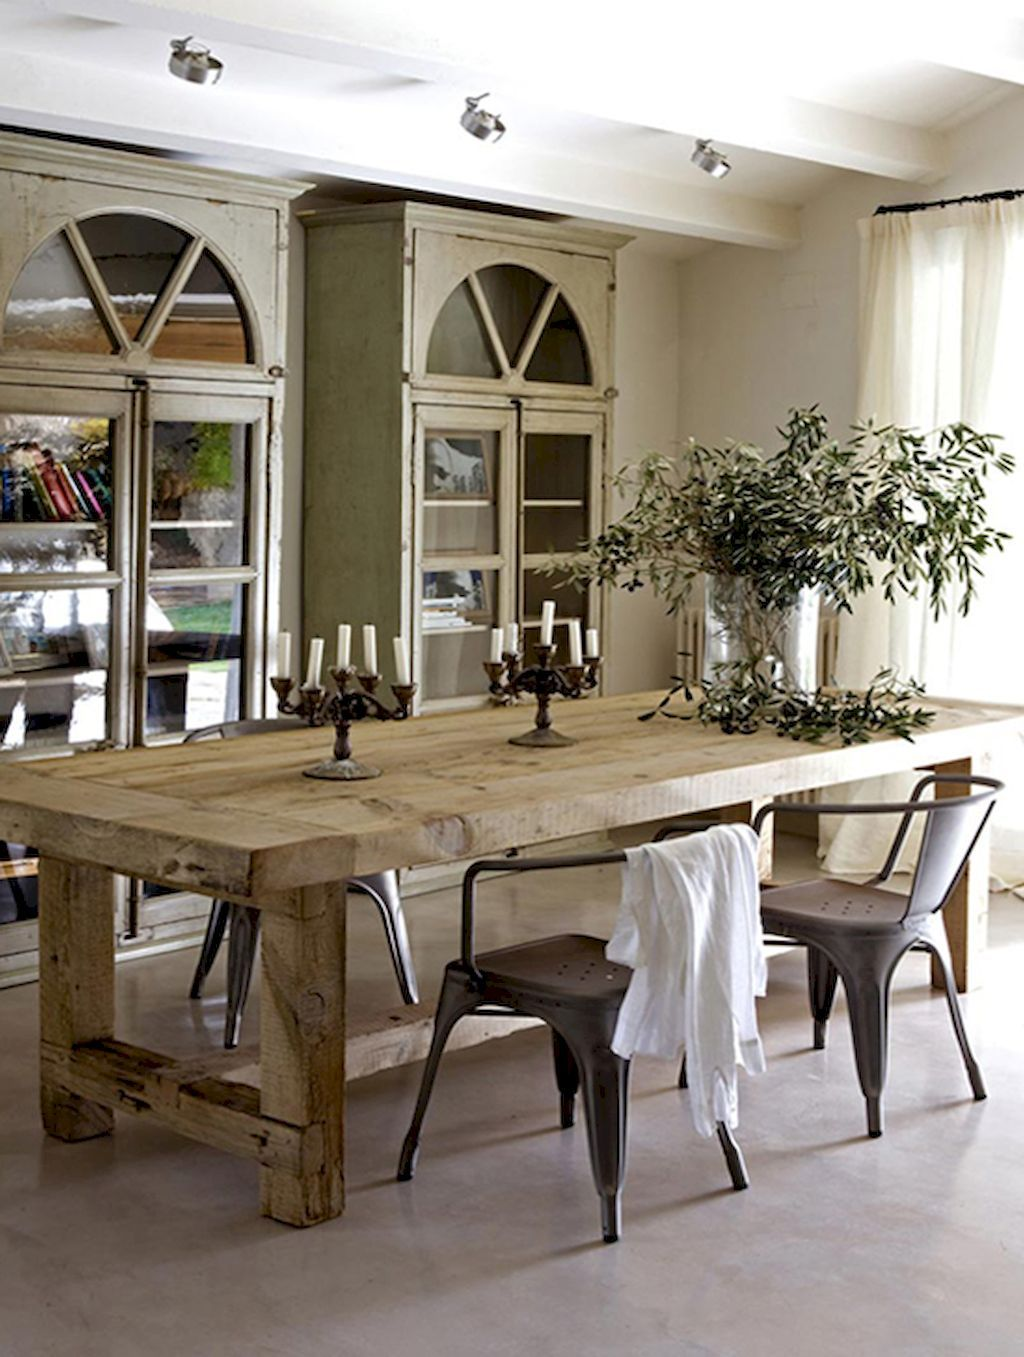 65 Timeles Farmhouse Dining Room Table and Decorating Ideas images